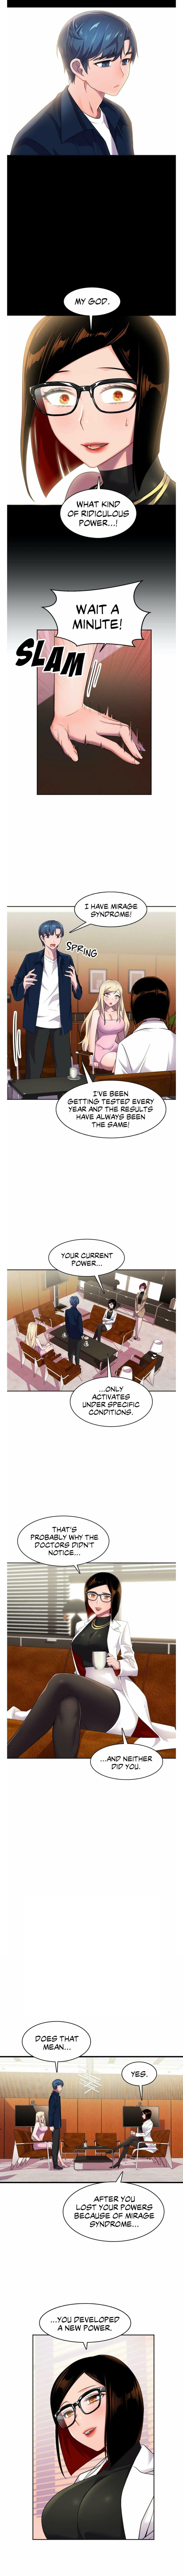 HERO MANAGER Ch. 1-16 90